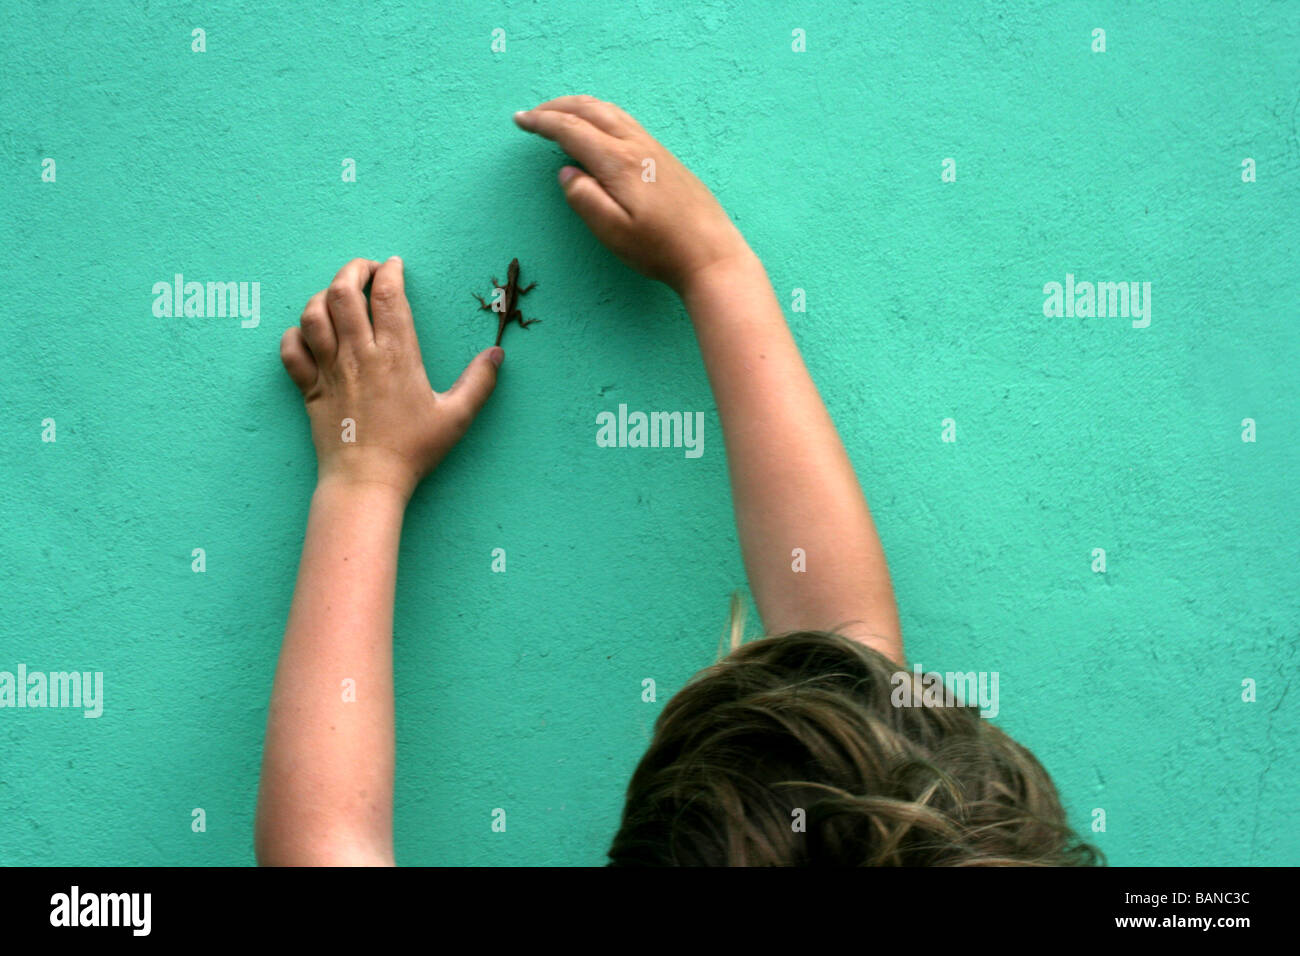 young boy trying to catch a gecko crawling on a wall, tropical island, Nassau, Bahamas - Stock Image